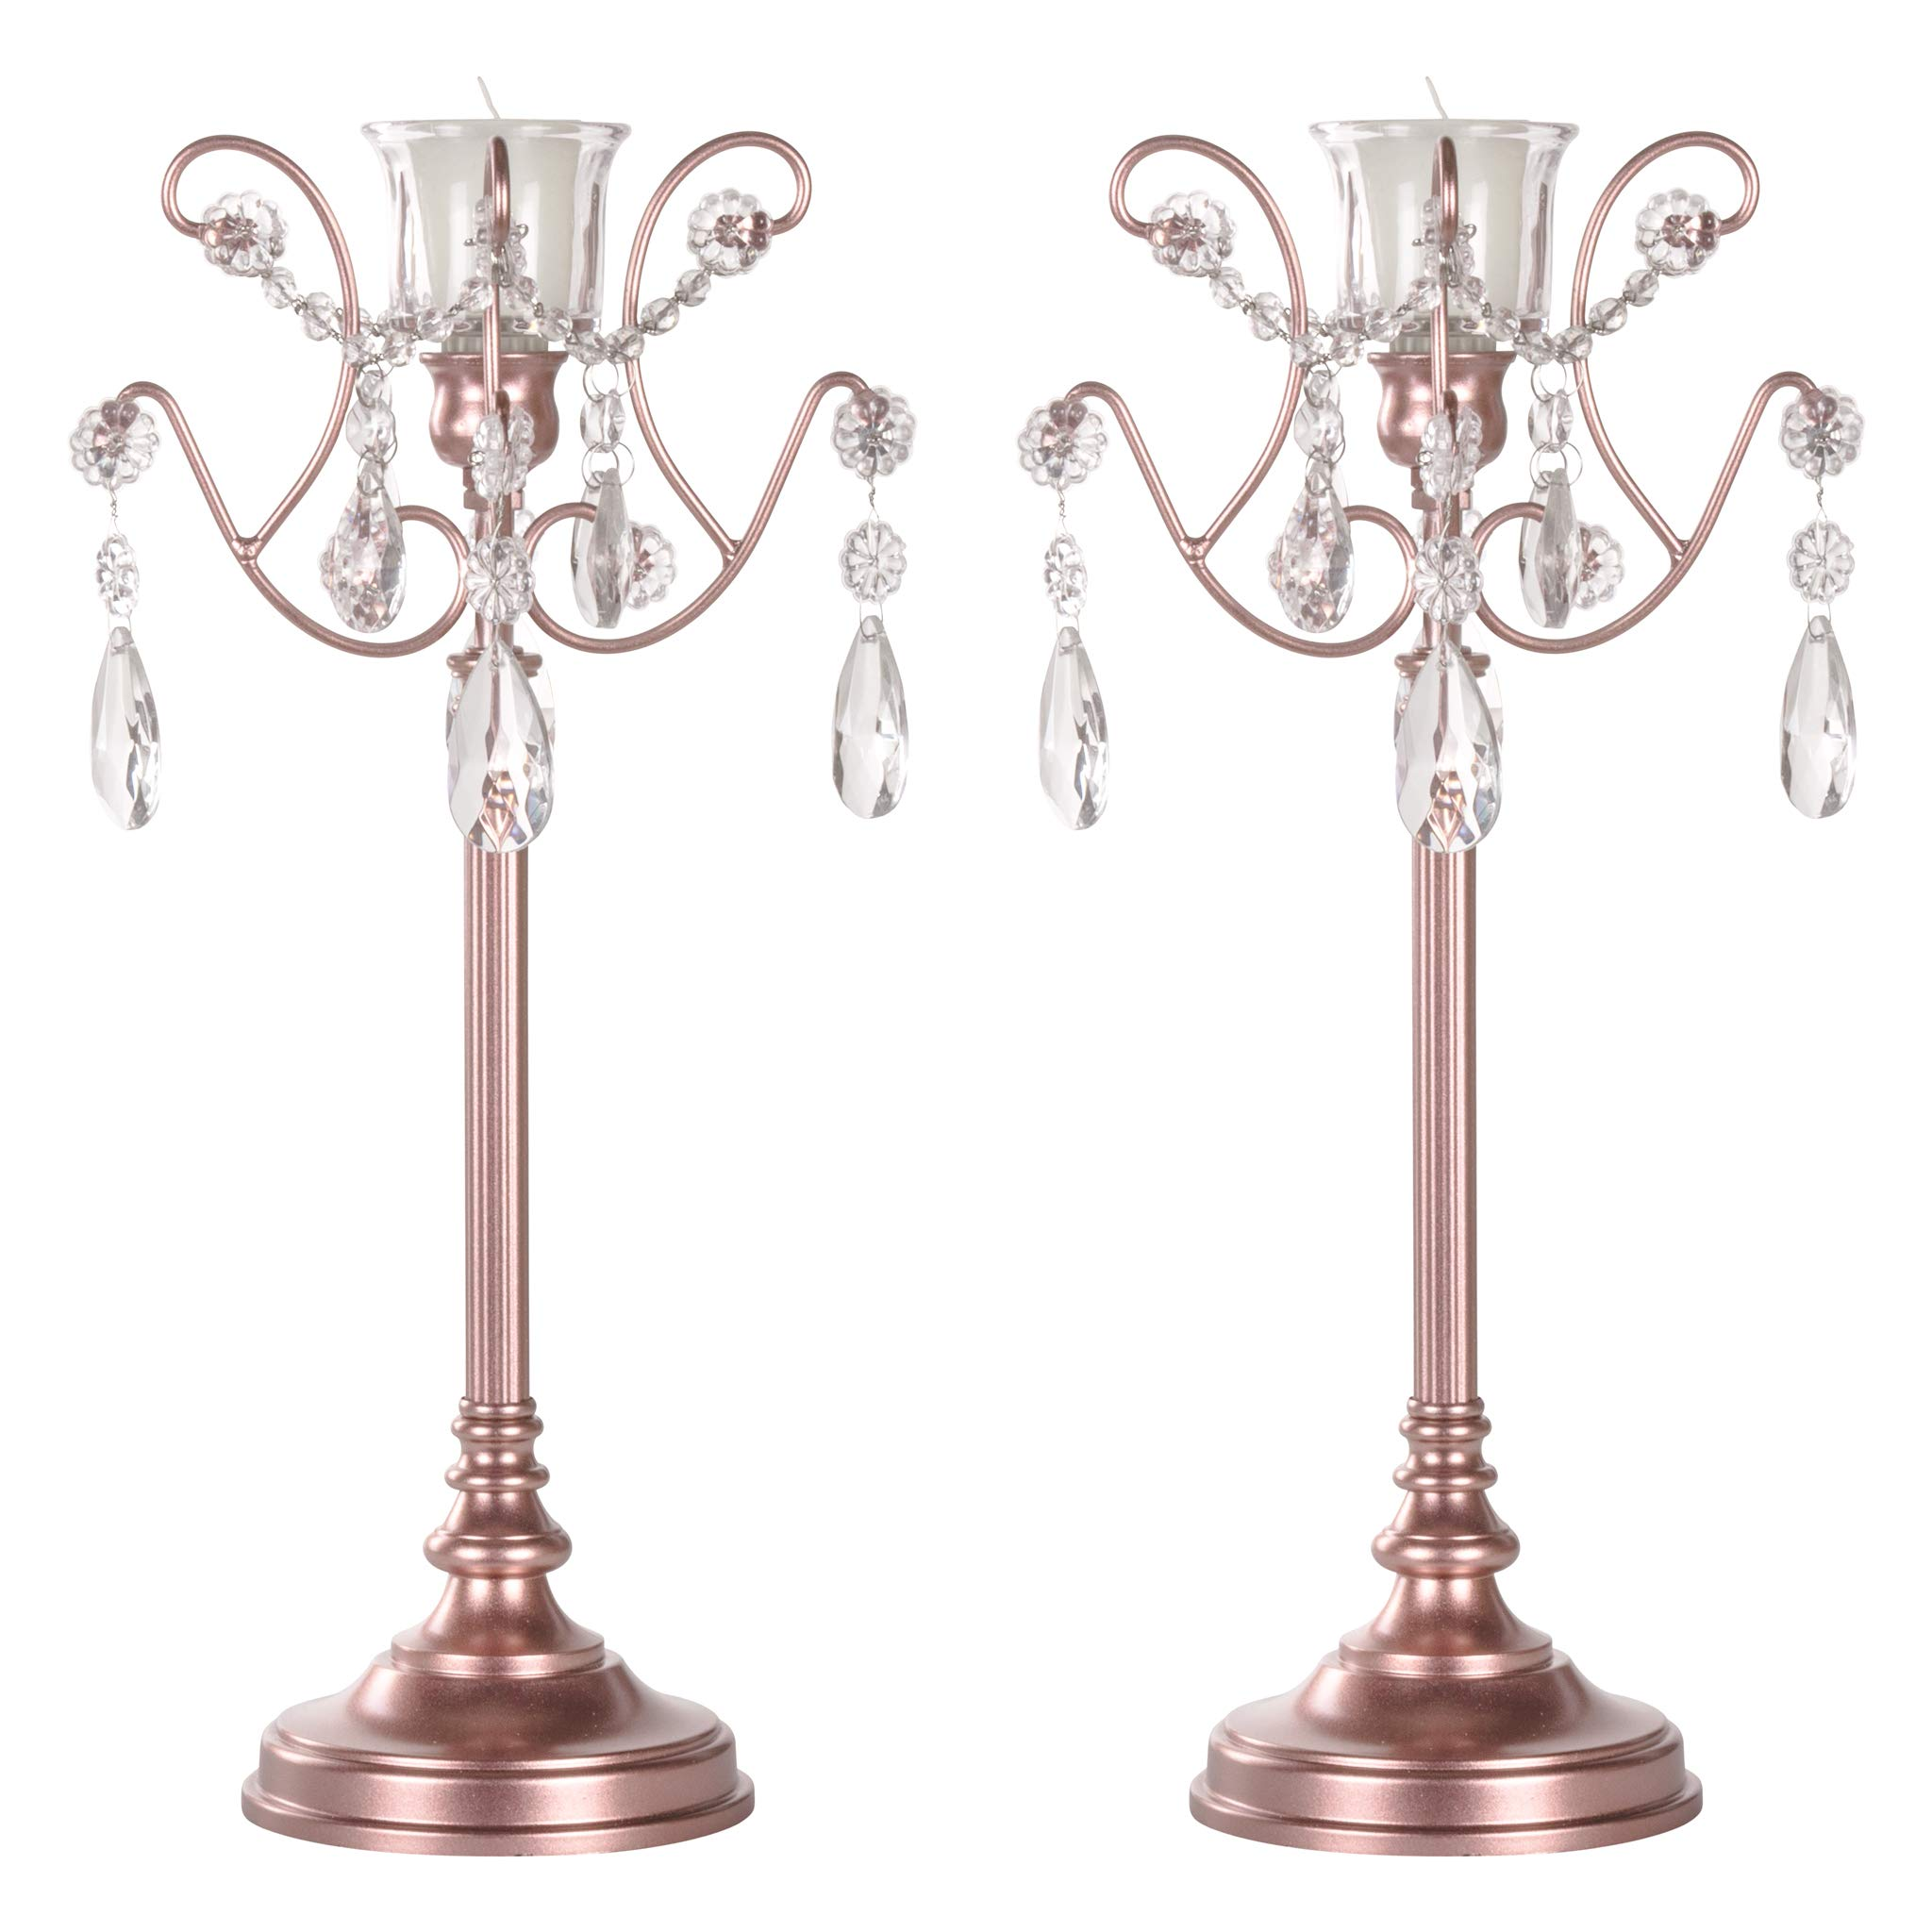 Amalfi Décor 2-Piece Rose Gold Metal Candelabra Set, Votive Candle Taper Candlestick Holder Unity Accent Stand